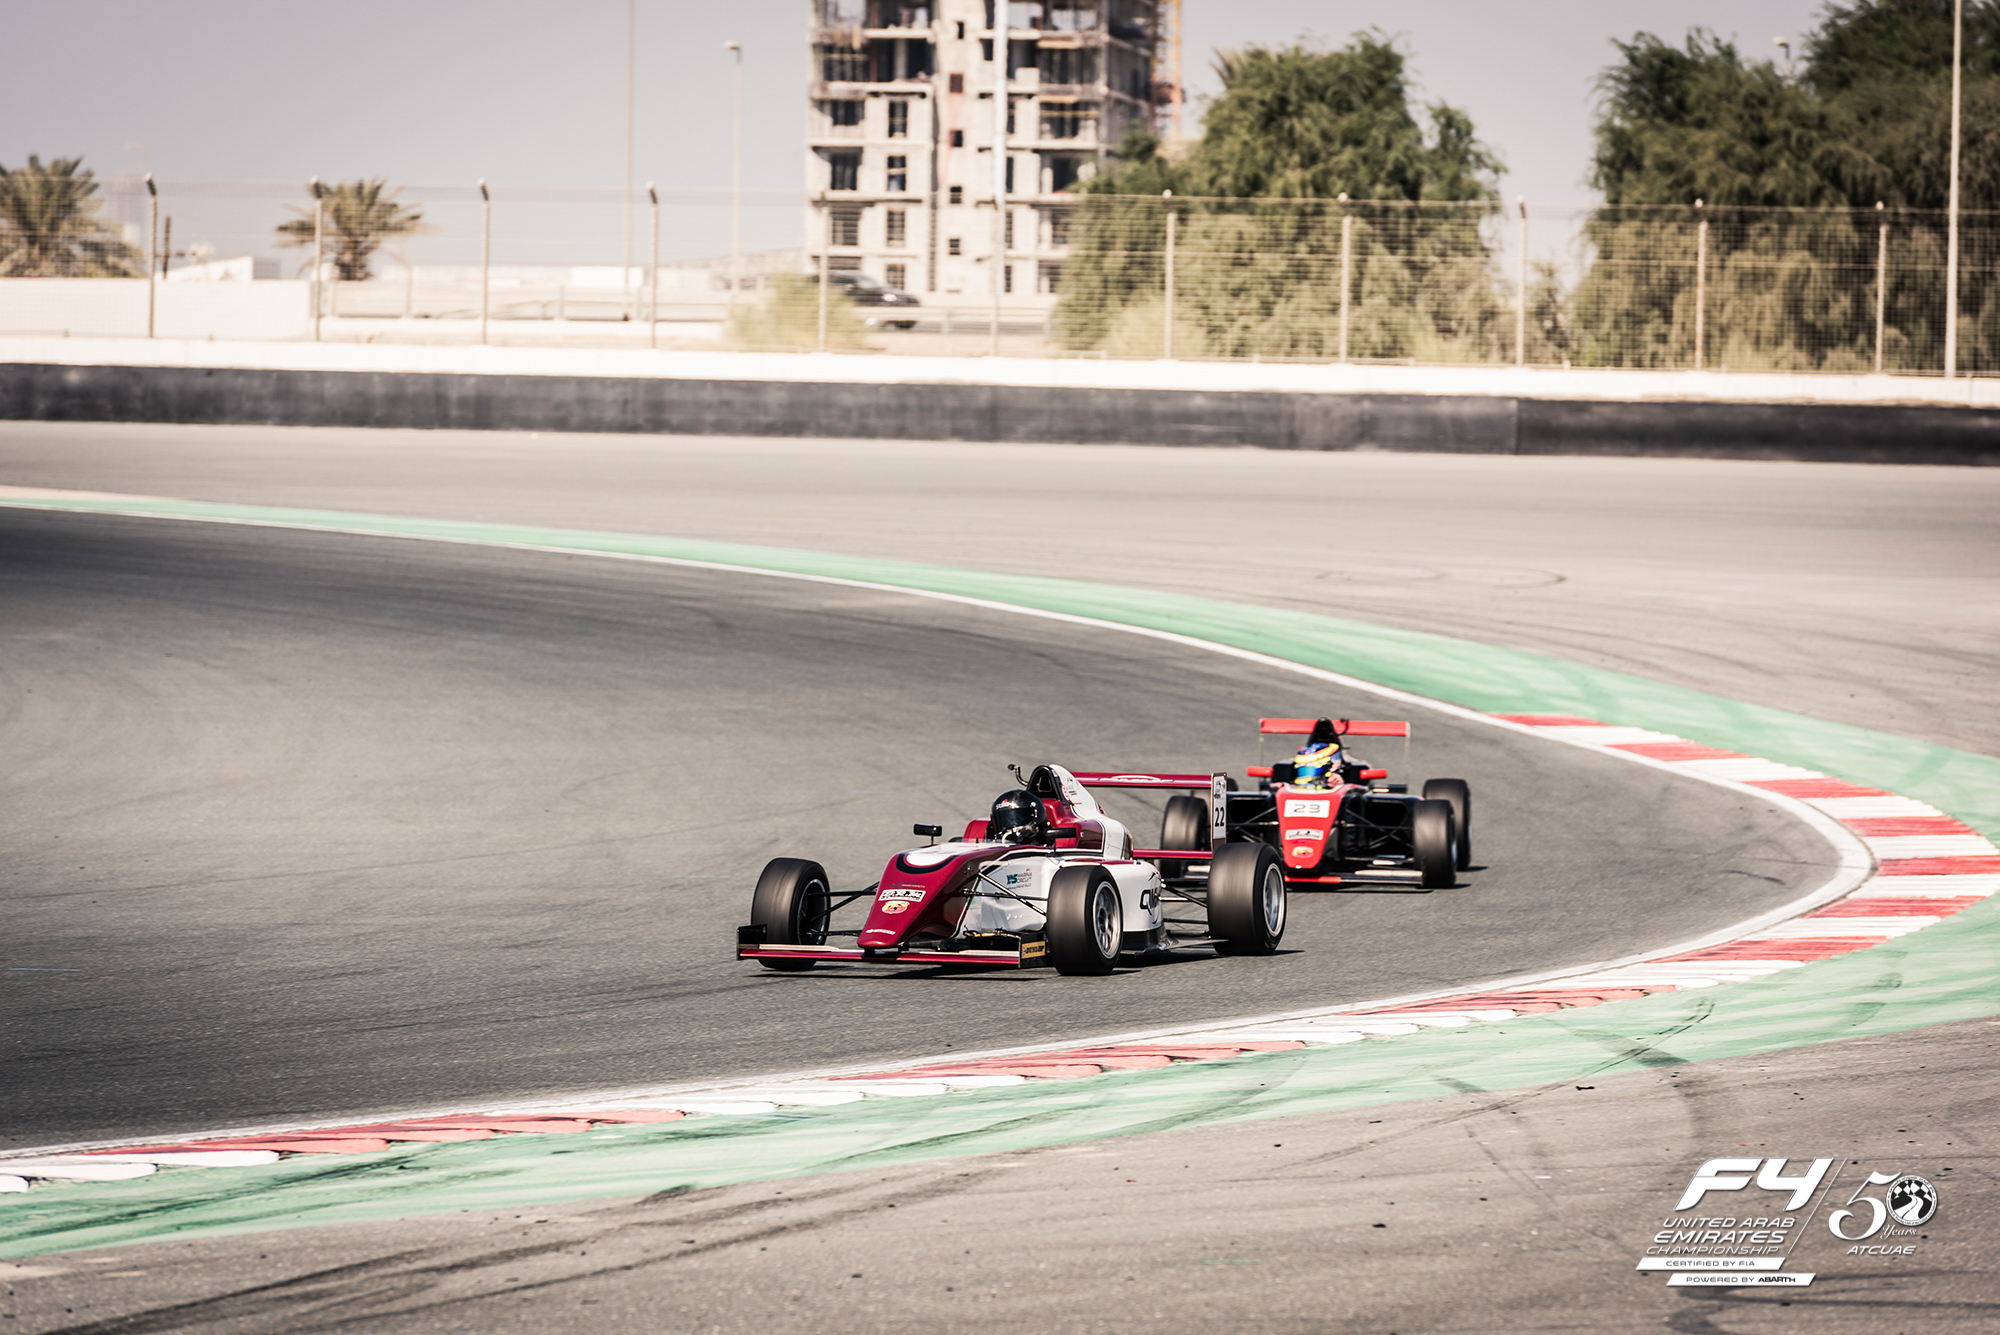 2016 10 30   Racing   Second Round   F4   Dubai    26 Of 34